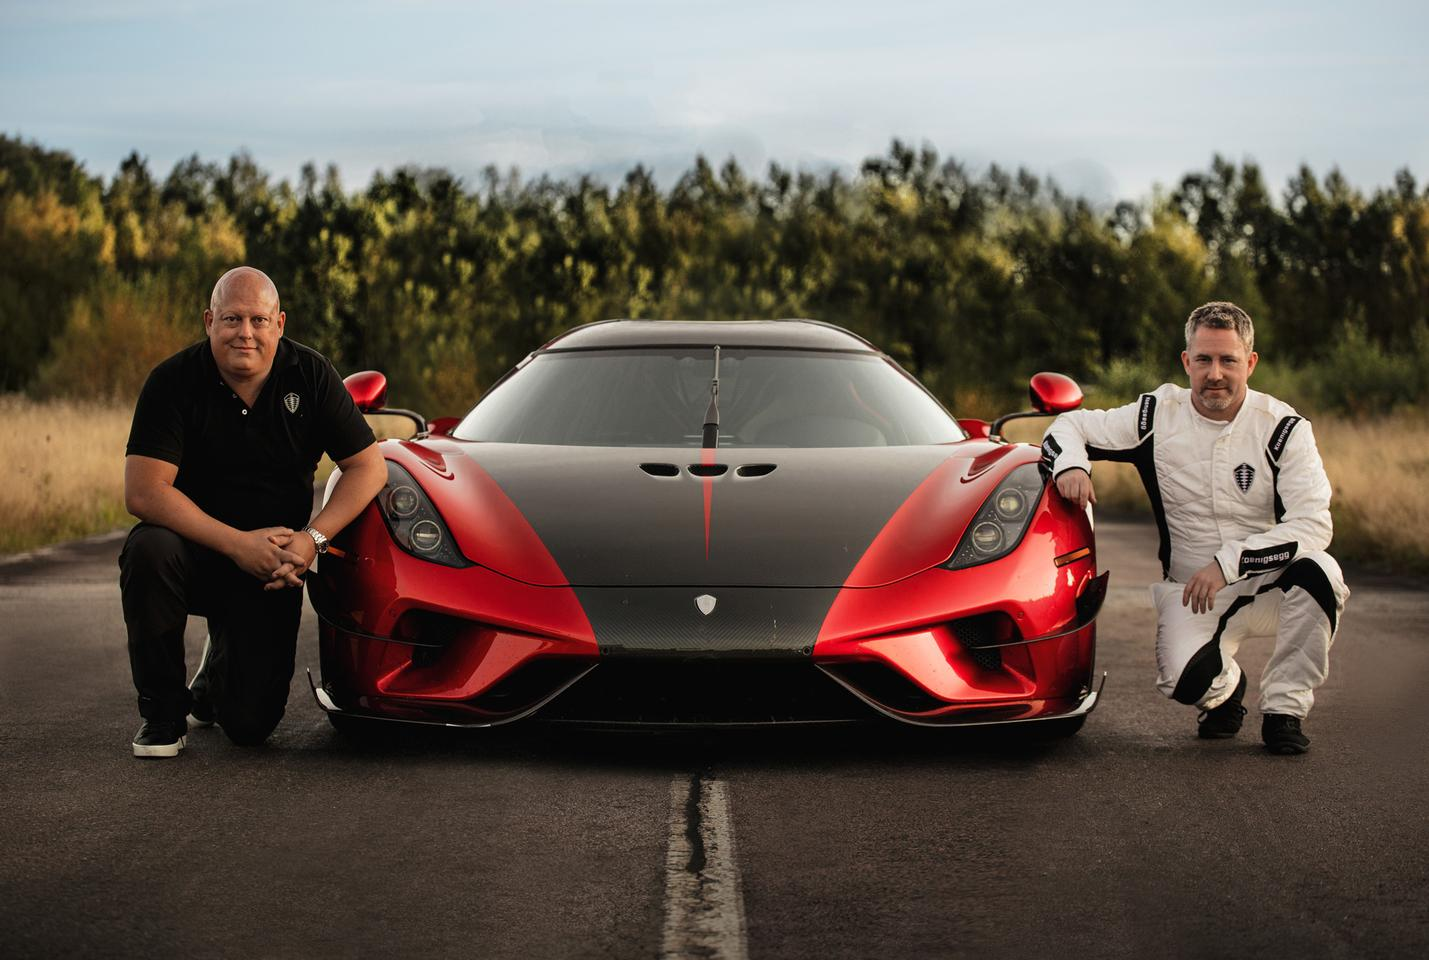 Christian Koenigsegg, left, with the Regera, center, and driver Sony Persson, right